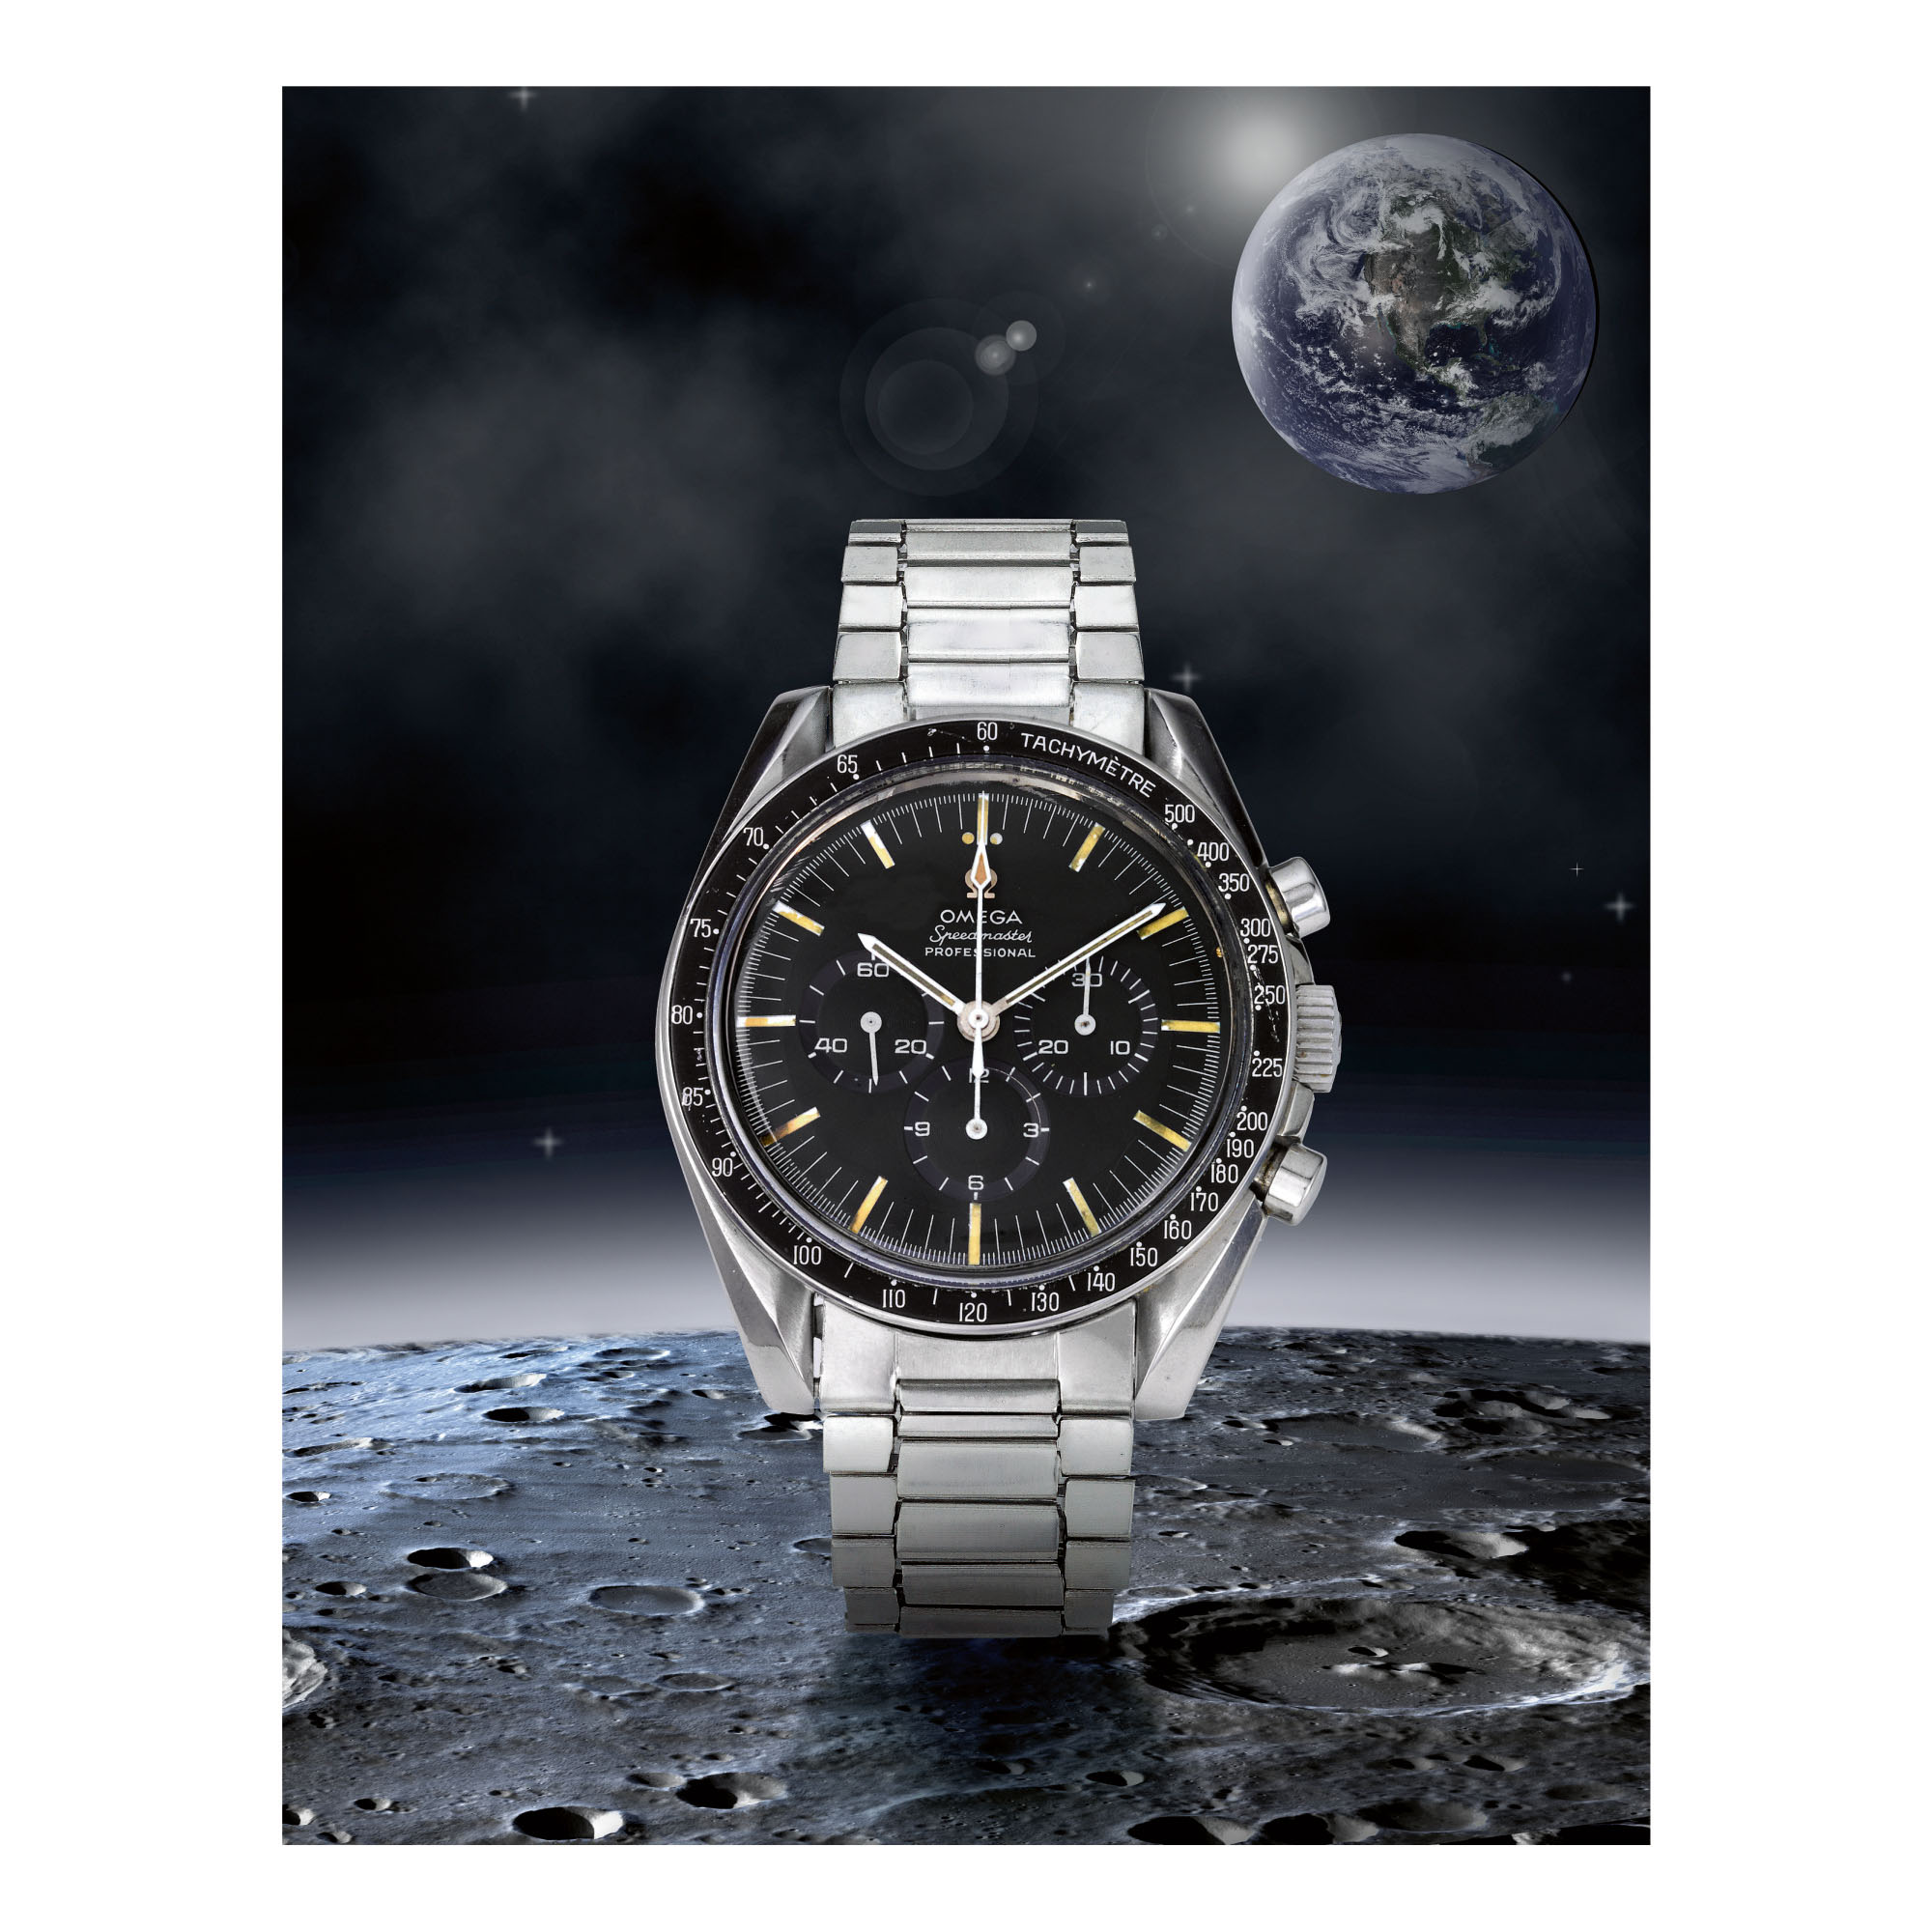 OMEGA | SPEEDMASTER REF 105.012-66 'PROFESISIONAL', A STAINLESS STEEL CHRONOGRAPH WRISTWATCH WITH BRACELET, MADE IN 1967